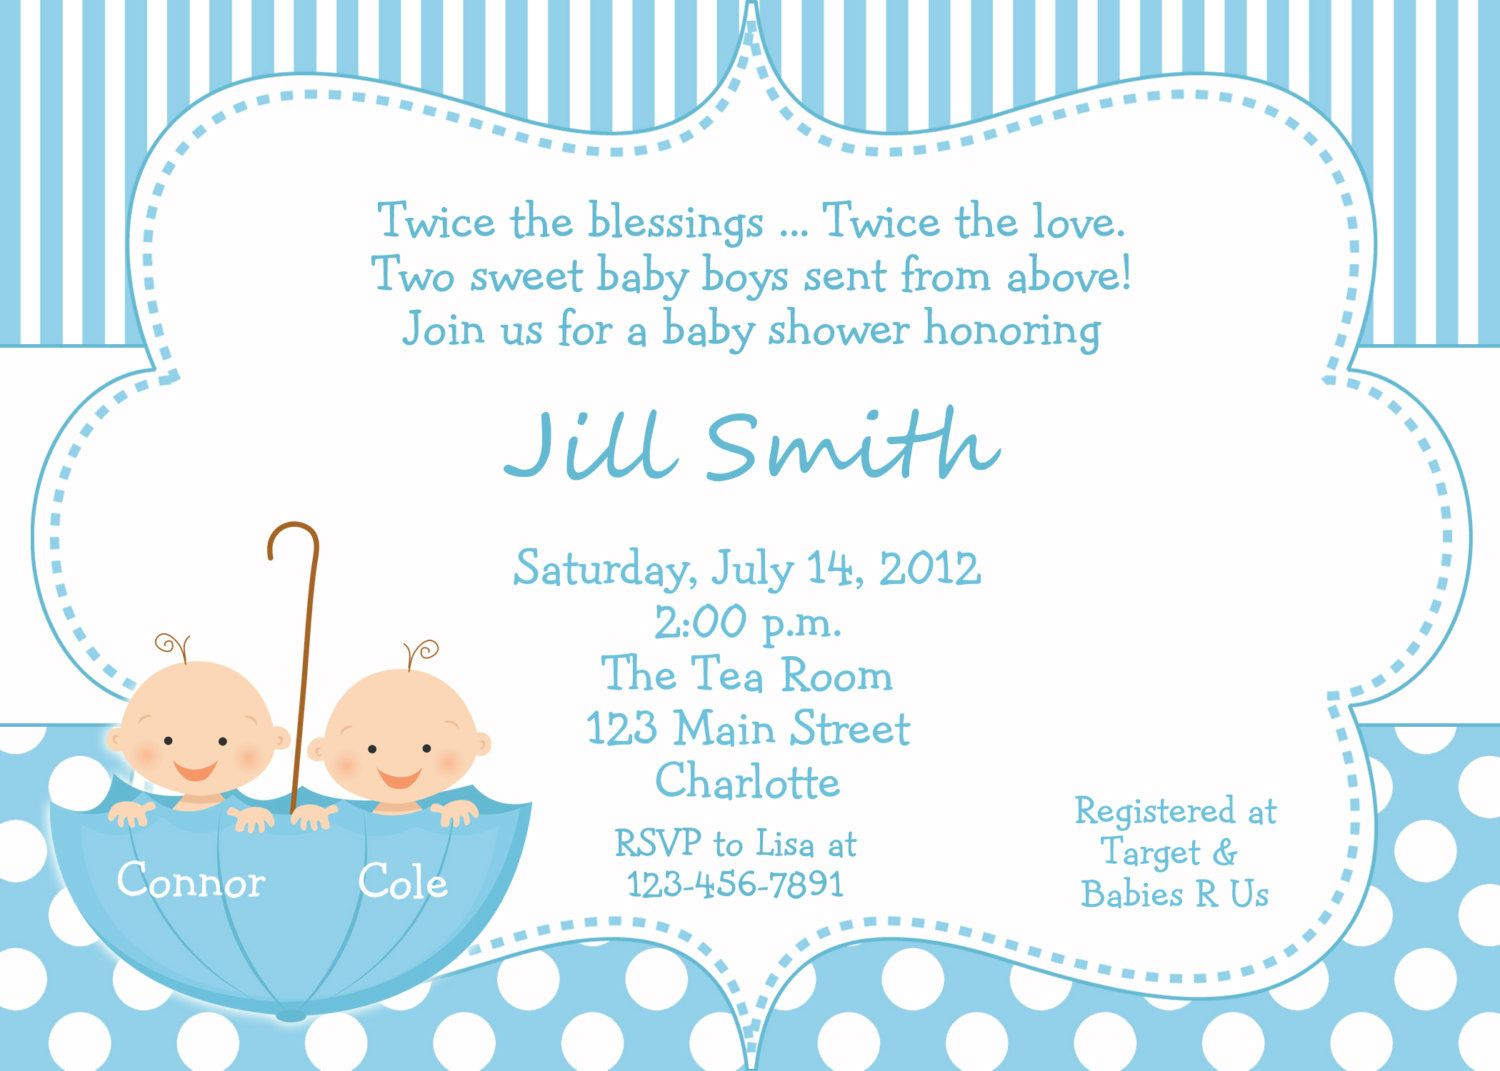 Baby shower invitations twin baby shower invitations blue for Baby shower decoration ideas for twins